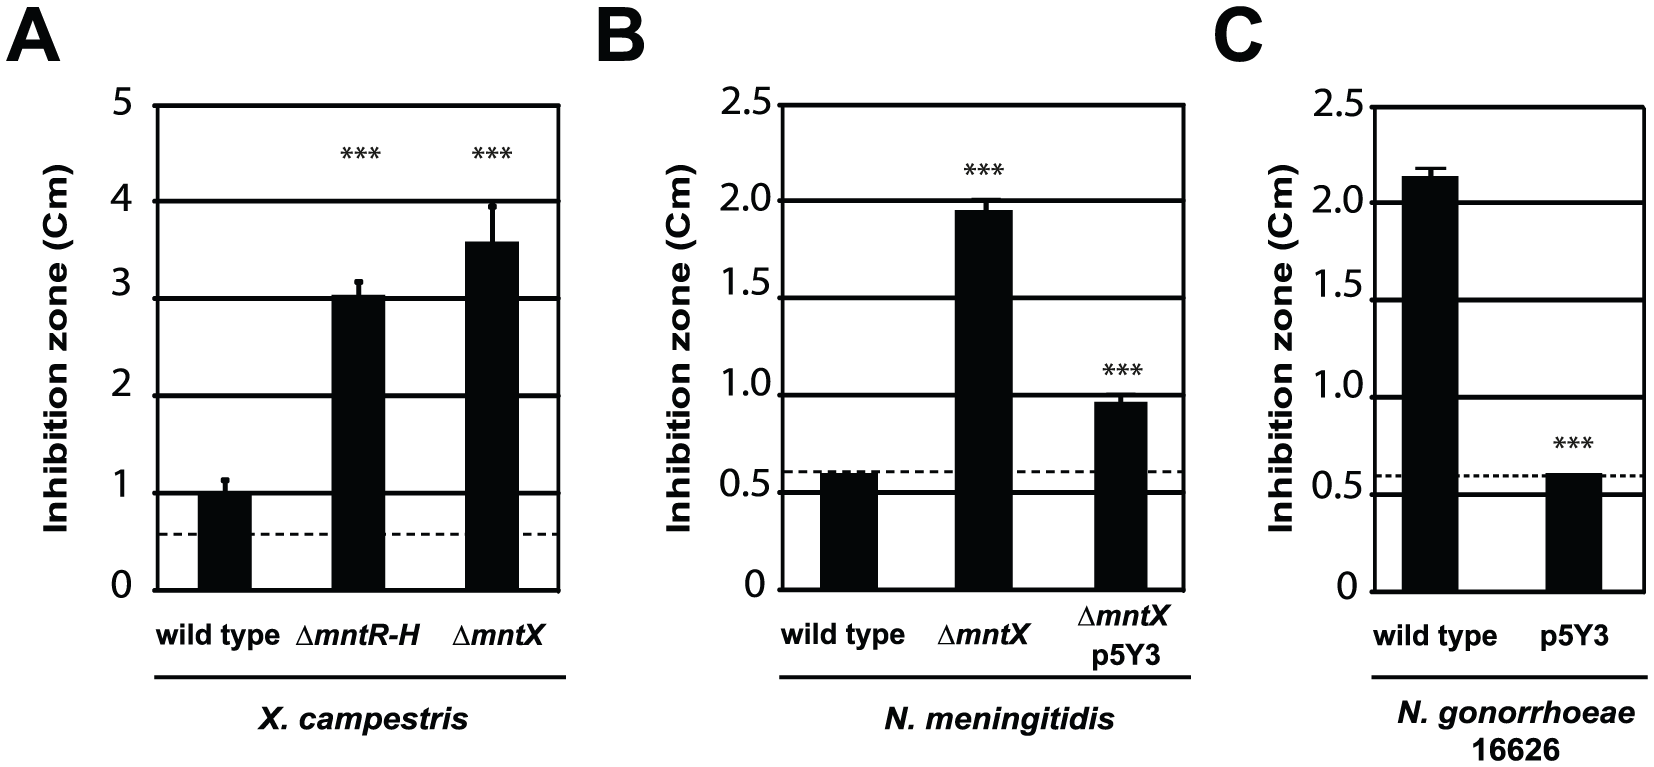 MntX which confers Mn resistance, is often not functional in <i>N. gonorrhoeae</i>.